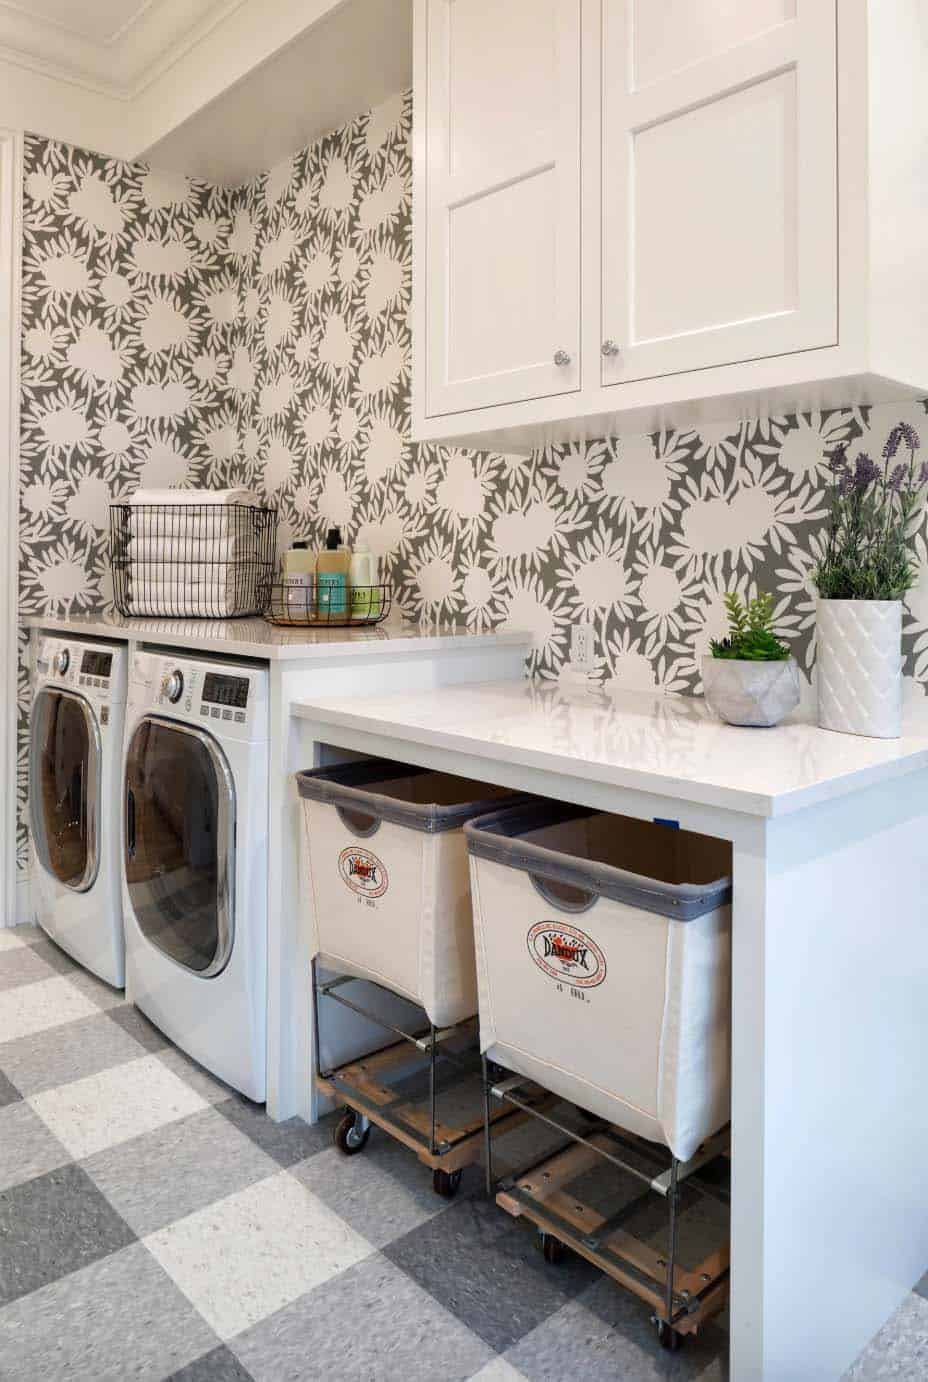 45 Functional And Stylish Laundry Room Design Ideas To Inspire on Laundry Room Decor Ideas  id=31743